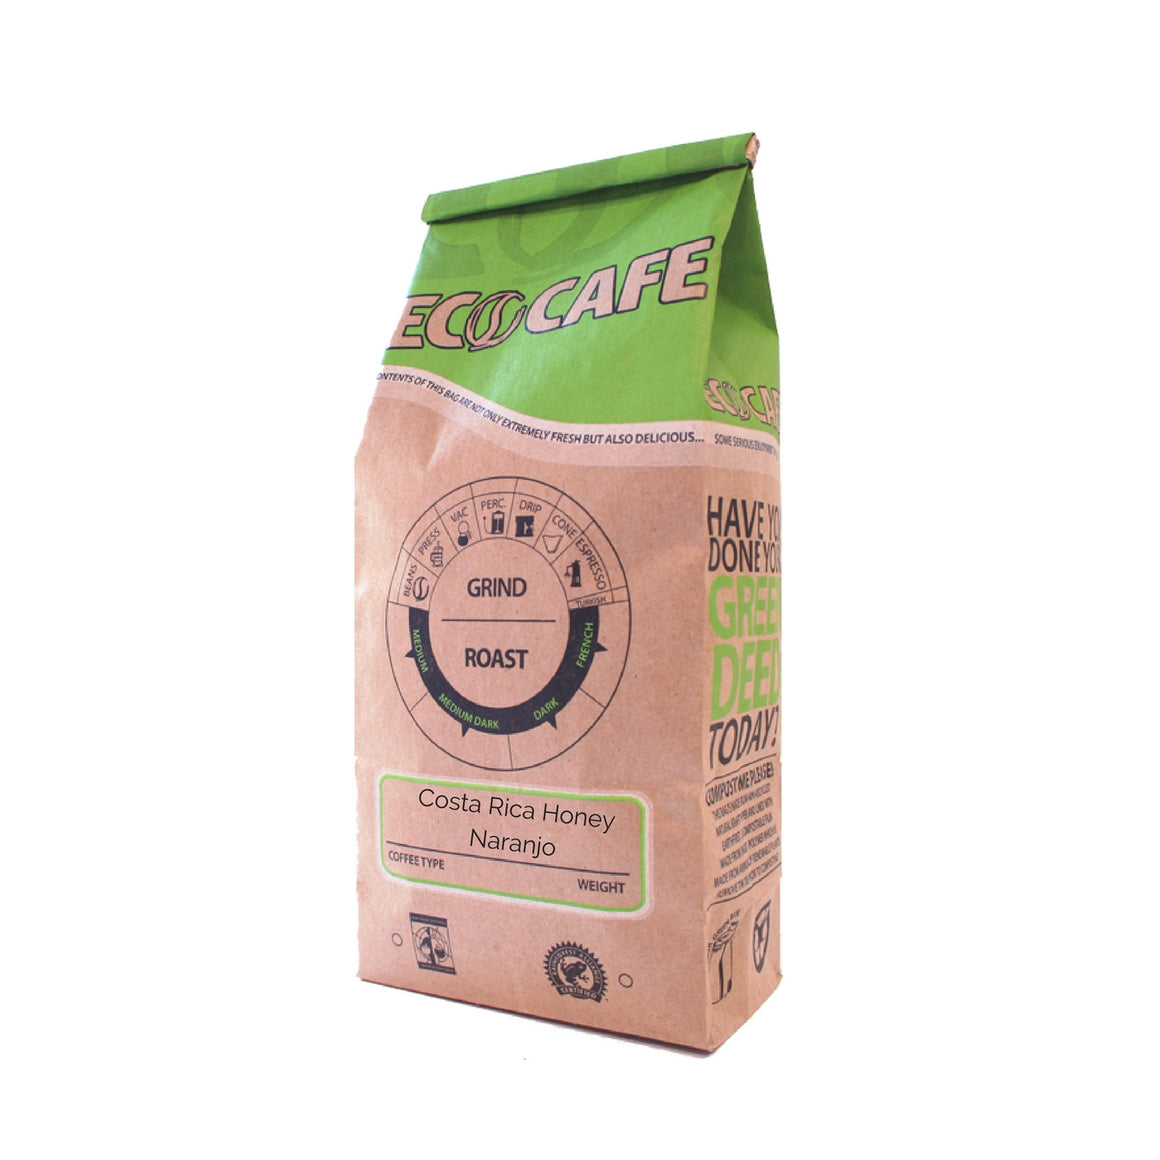 Costa Rica Honey Naranjo 12oz (340g)